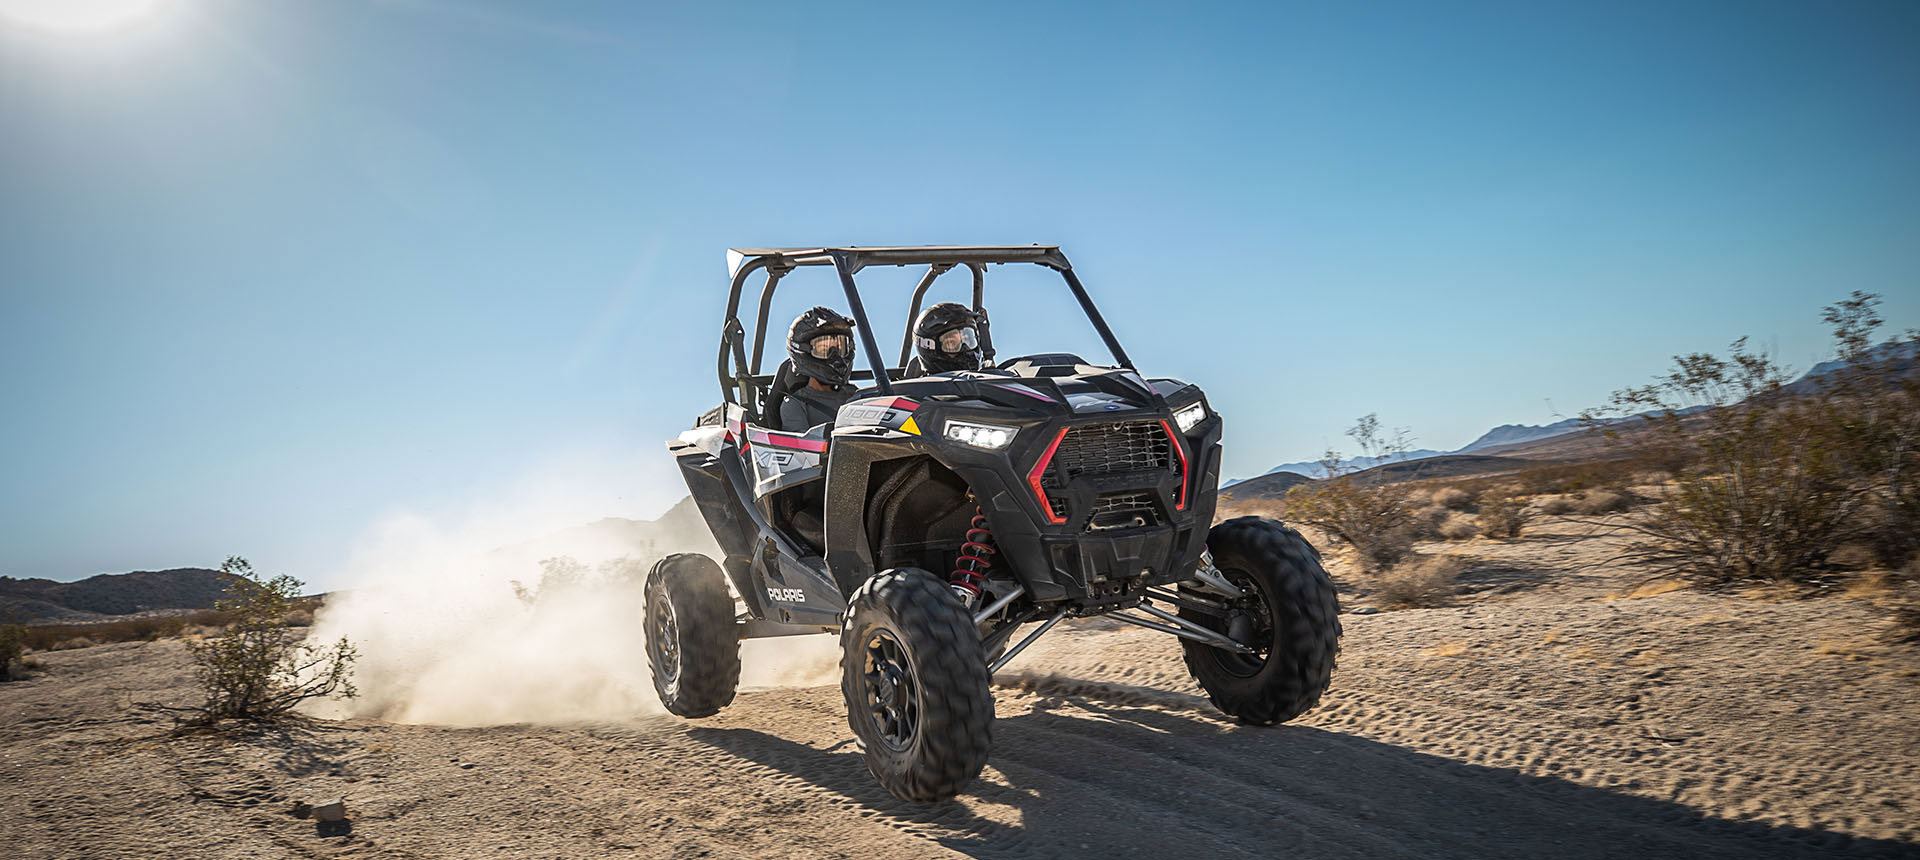 2019 Polaris RZR XP 1000 in Hazlehurst, Georgia - Photo 8